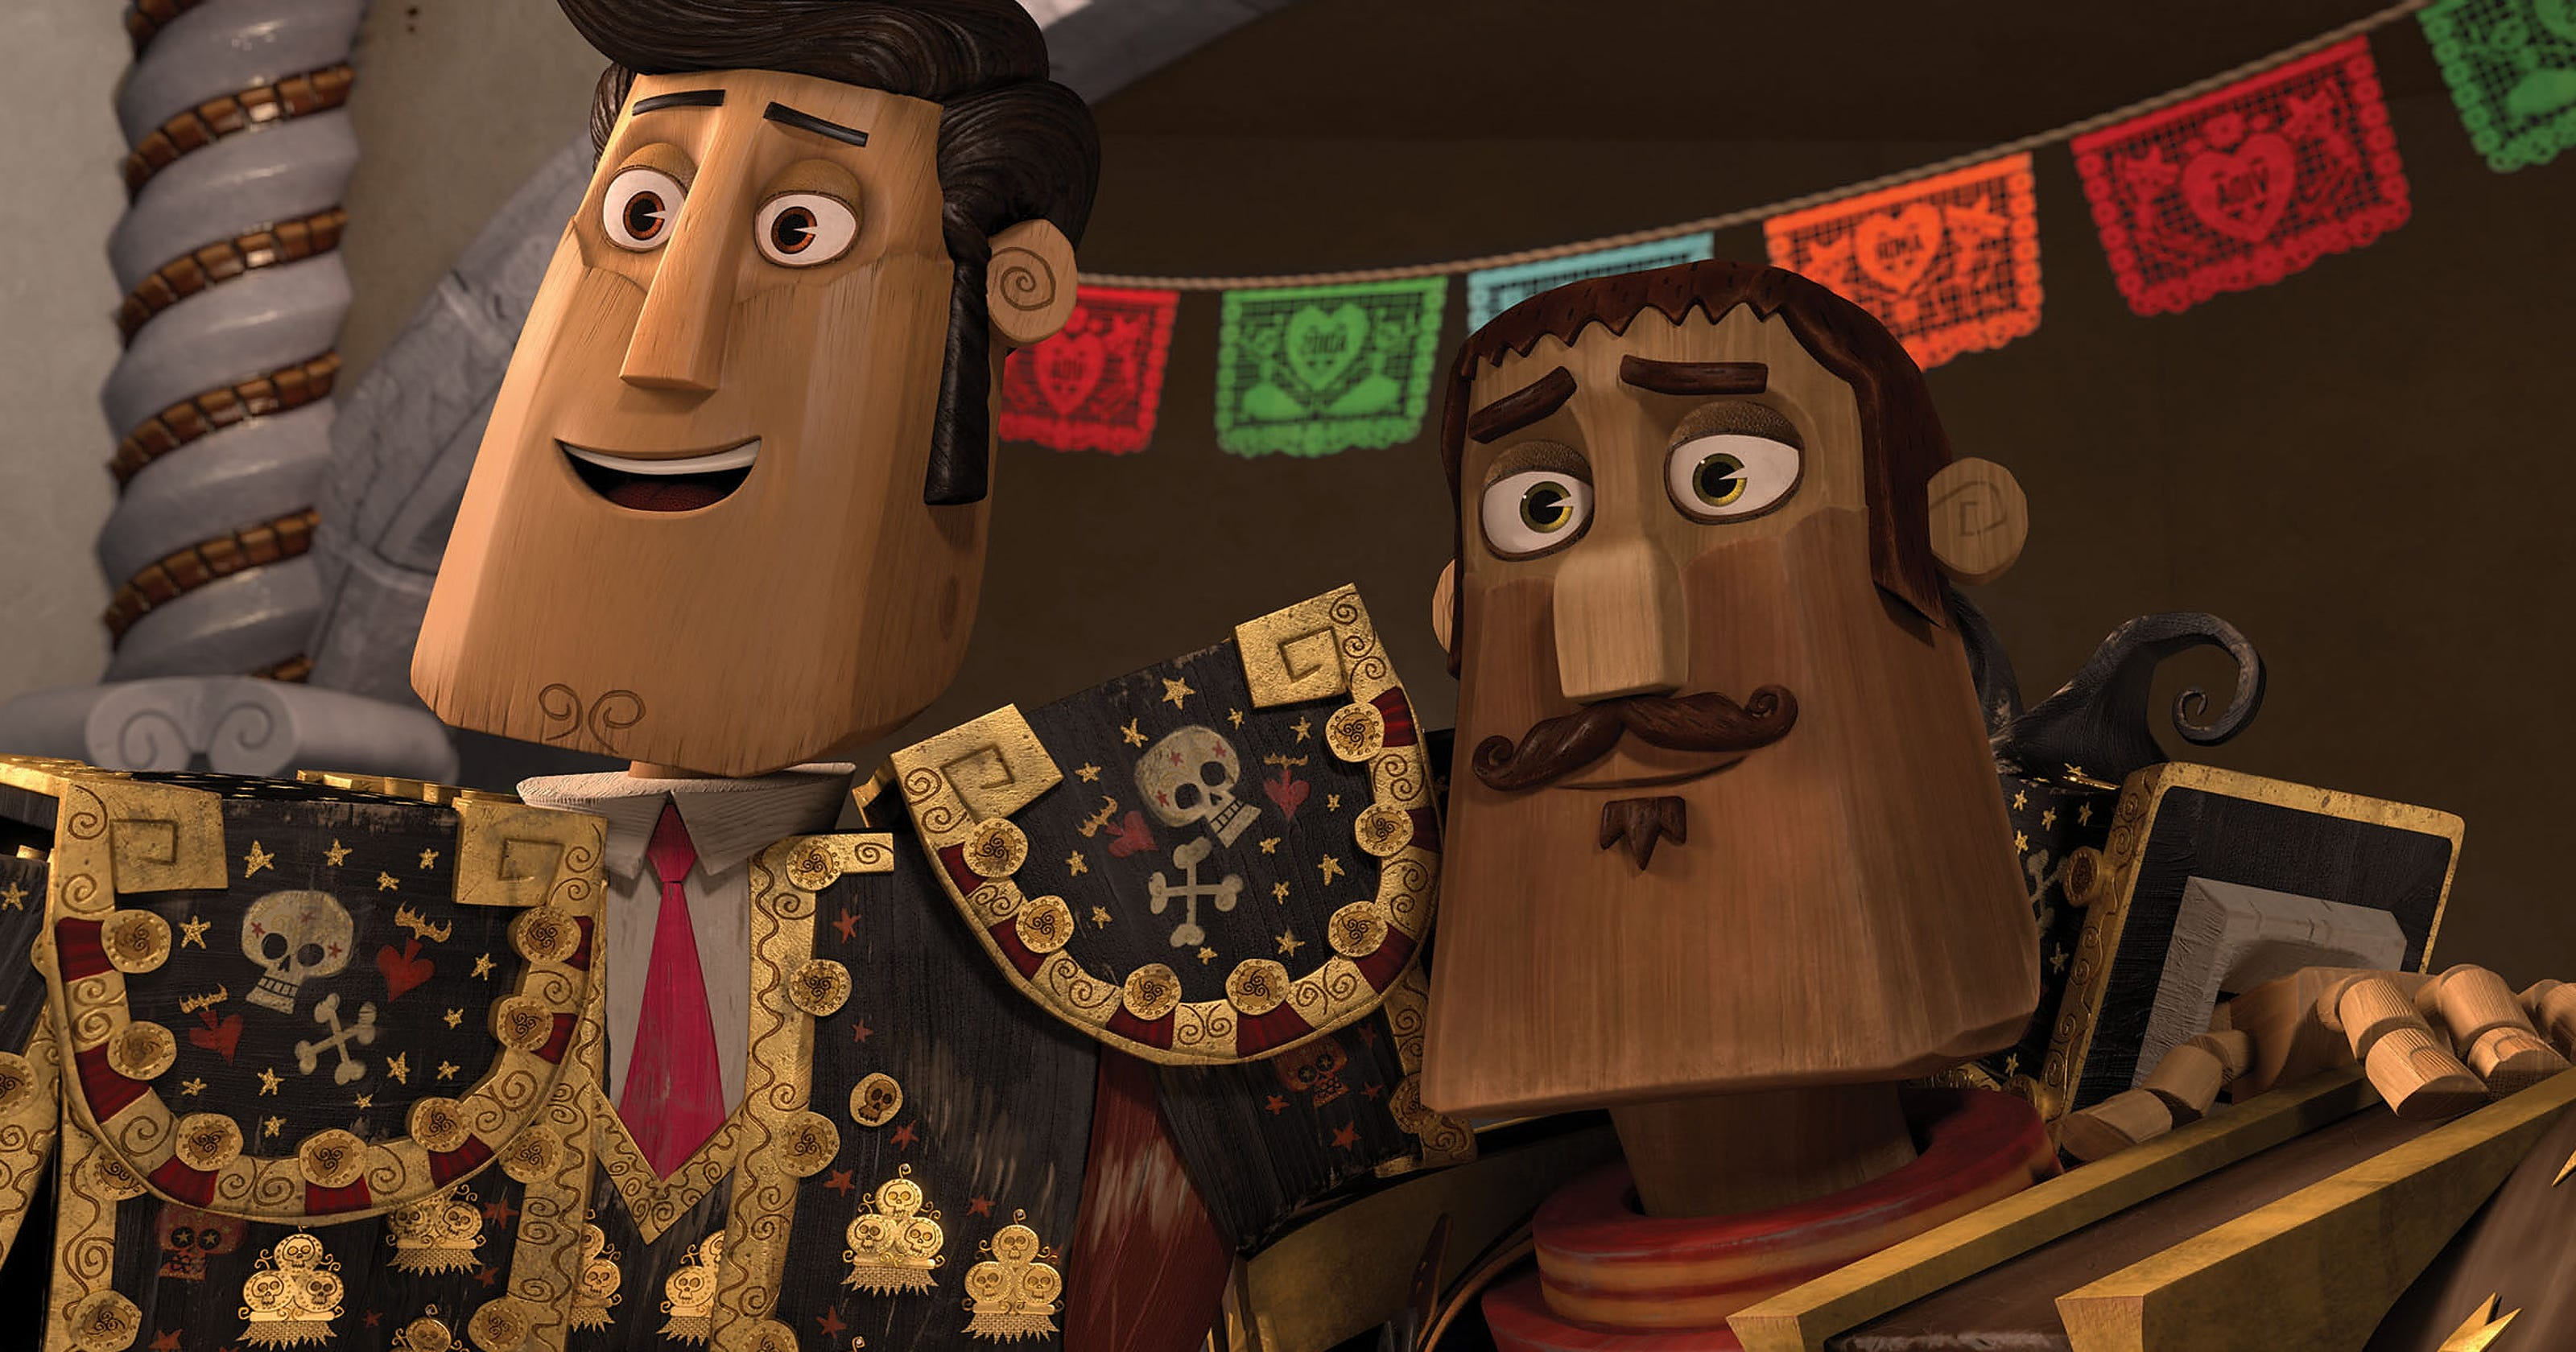 Manolo book of life actor